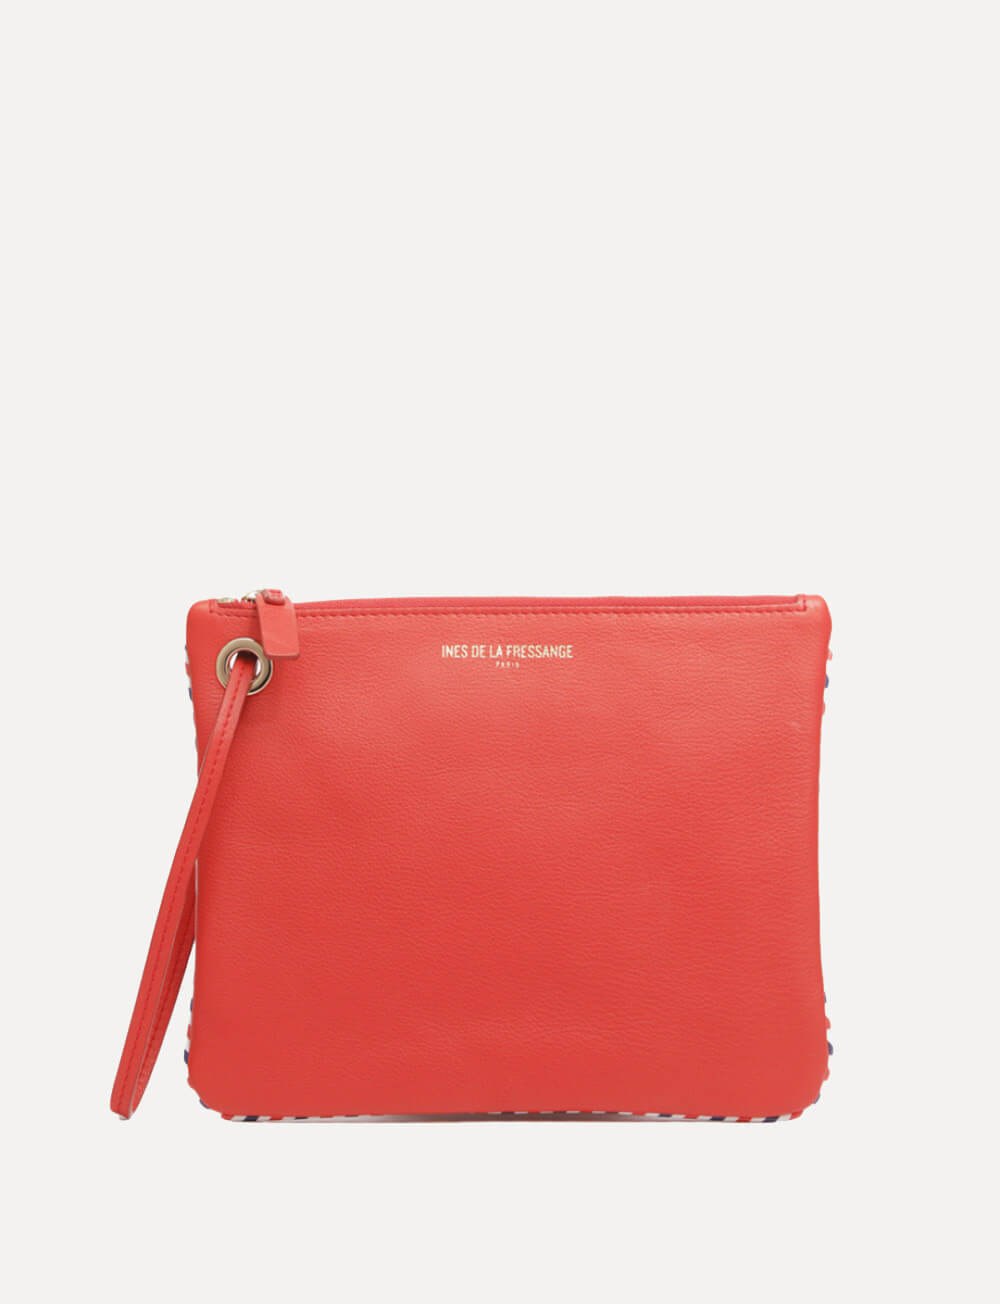 pochette-marcia-l-cuir-rouge